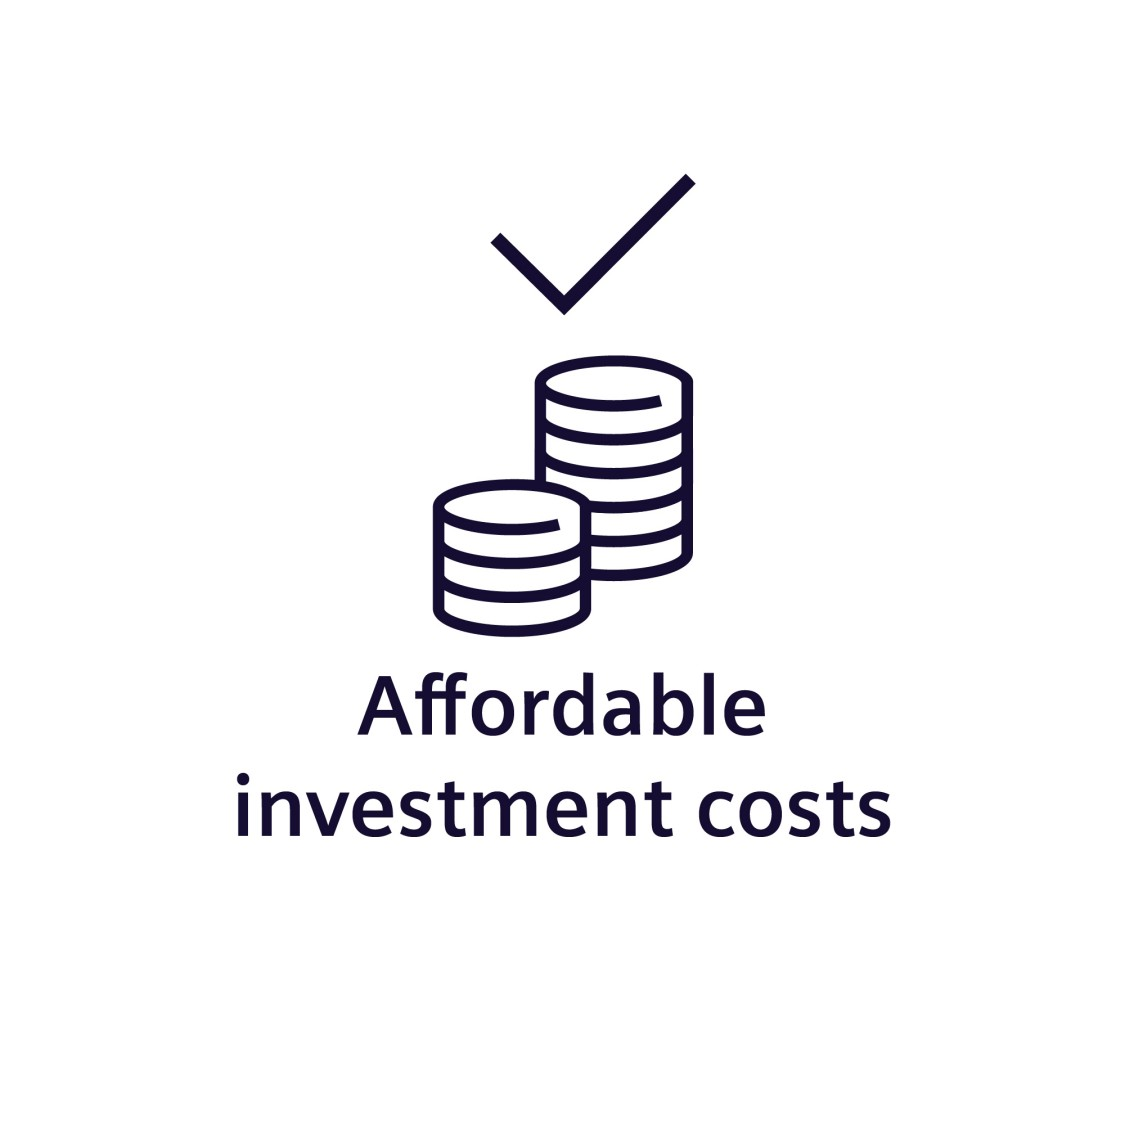 Affordable investment costs